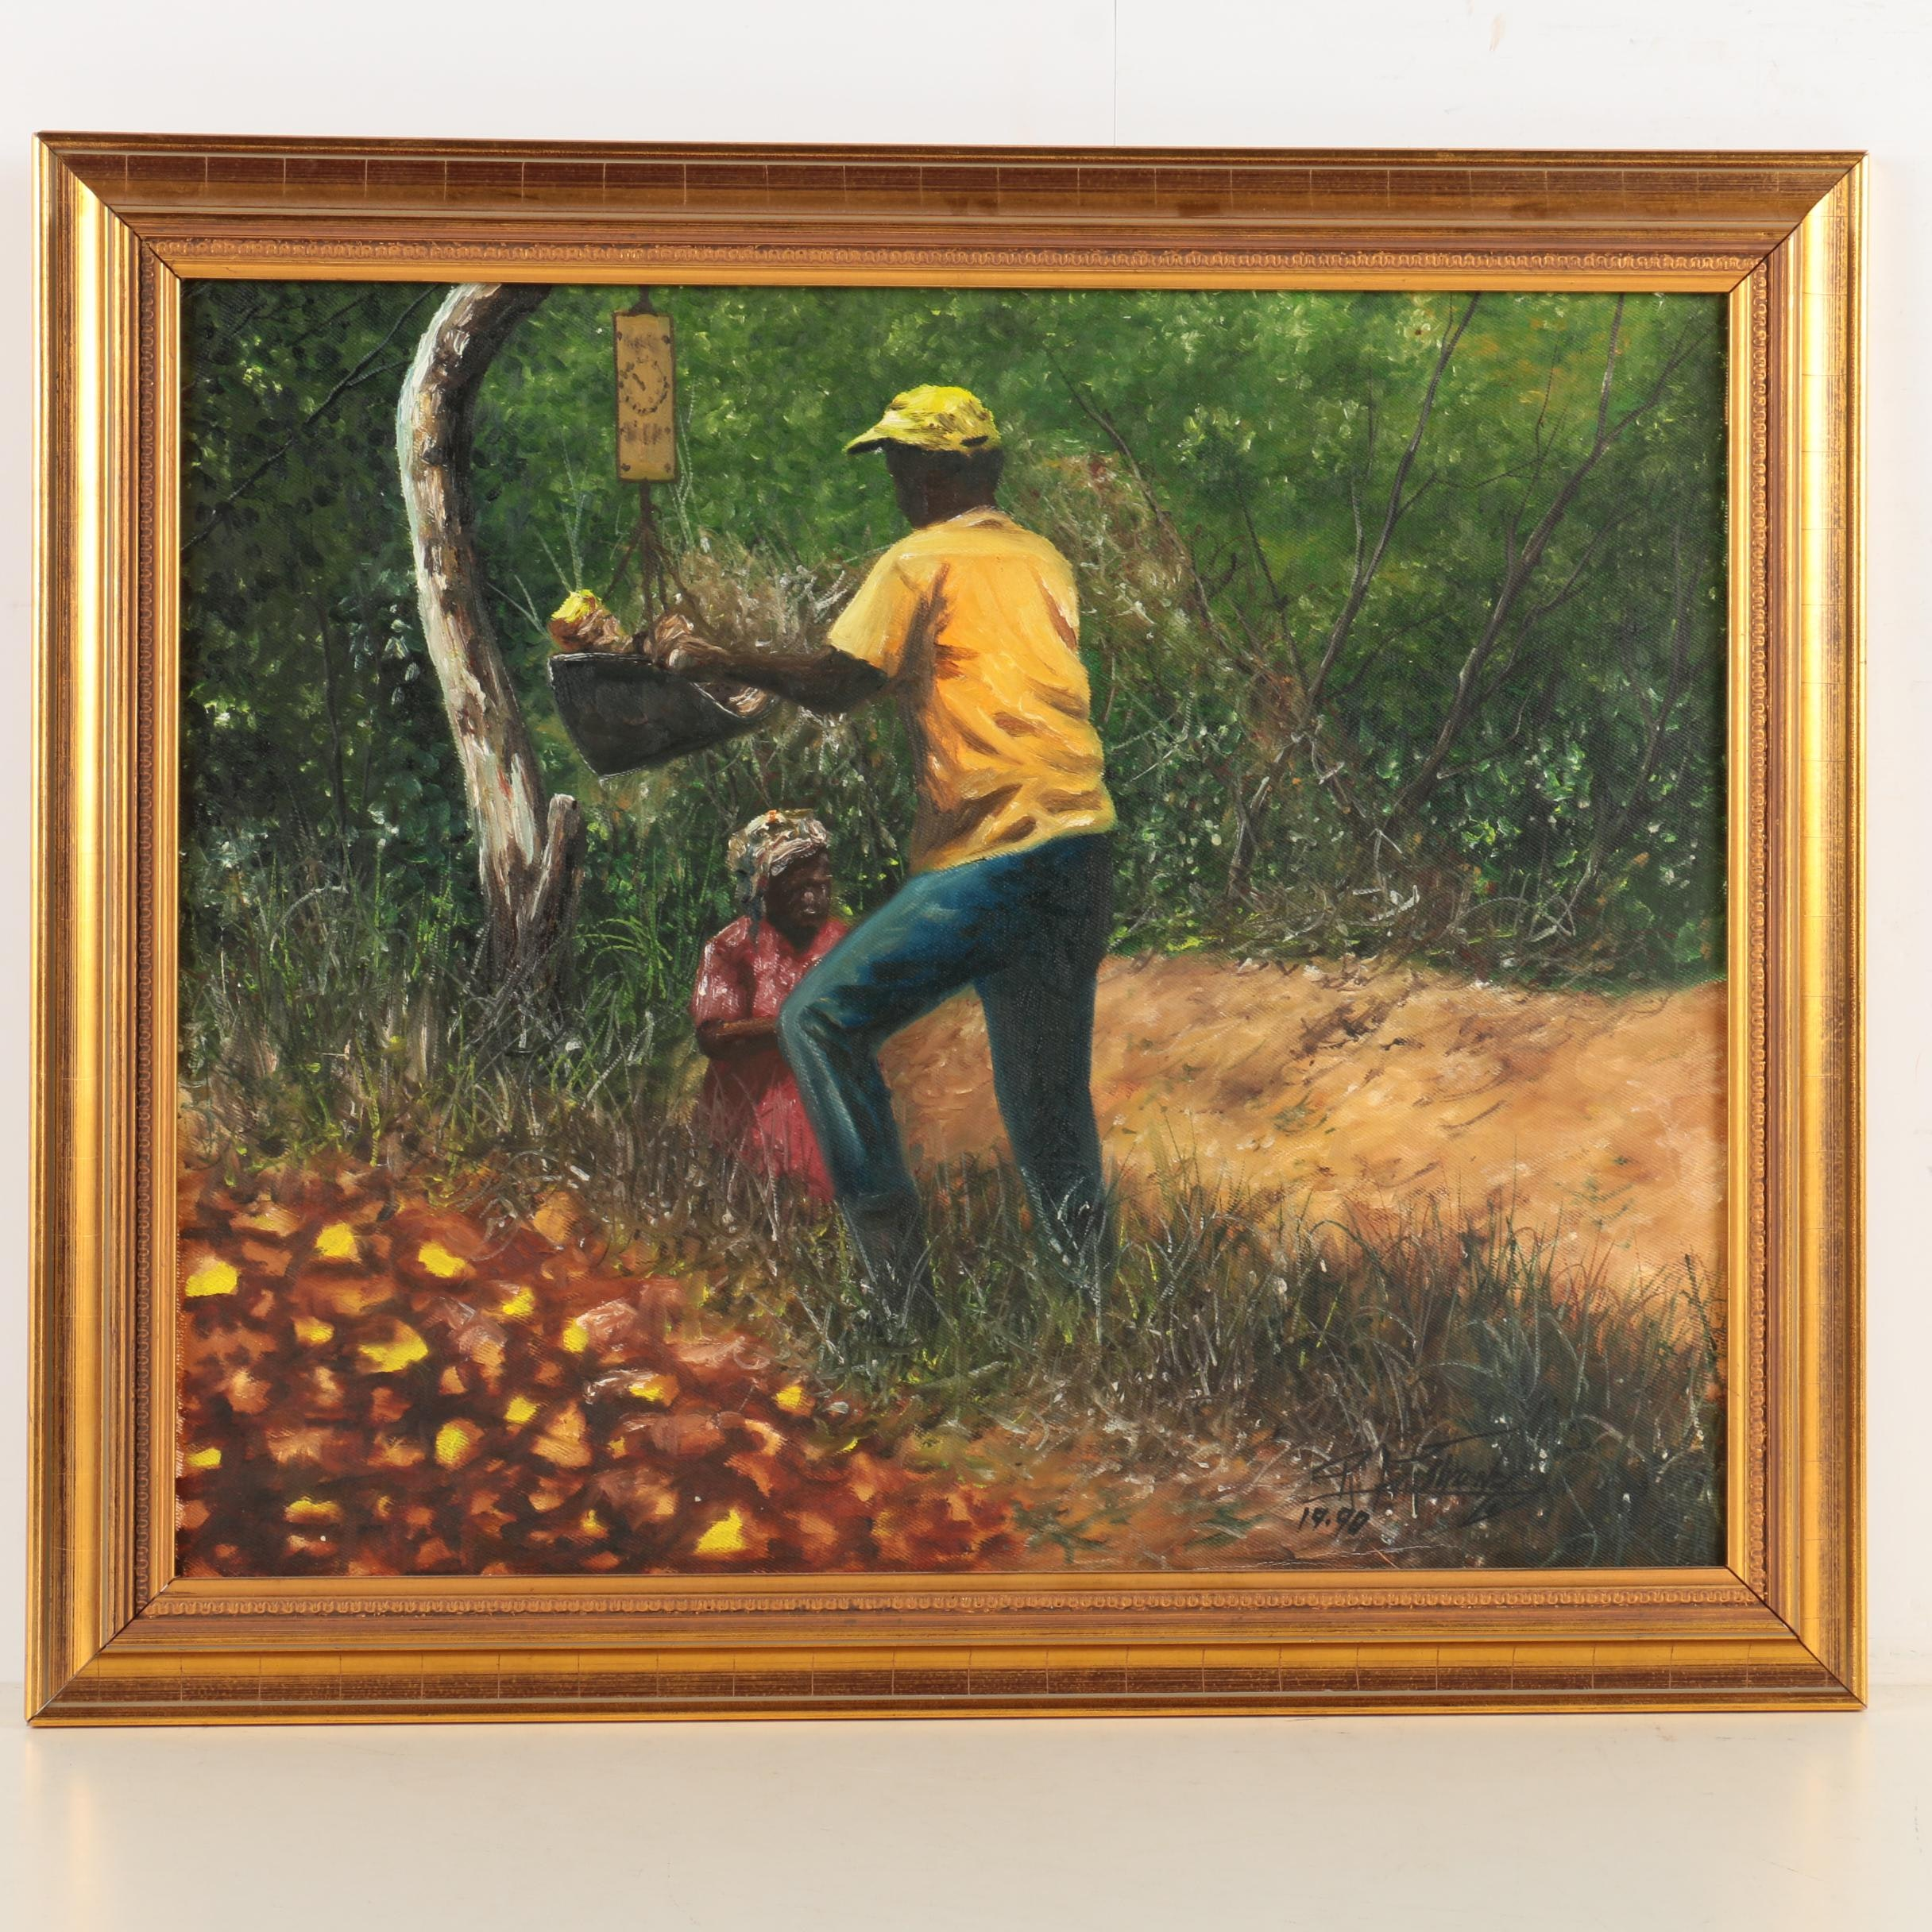 R. Armstrong Oil Painting on Canvas of Workers